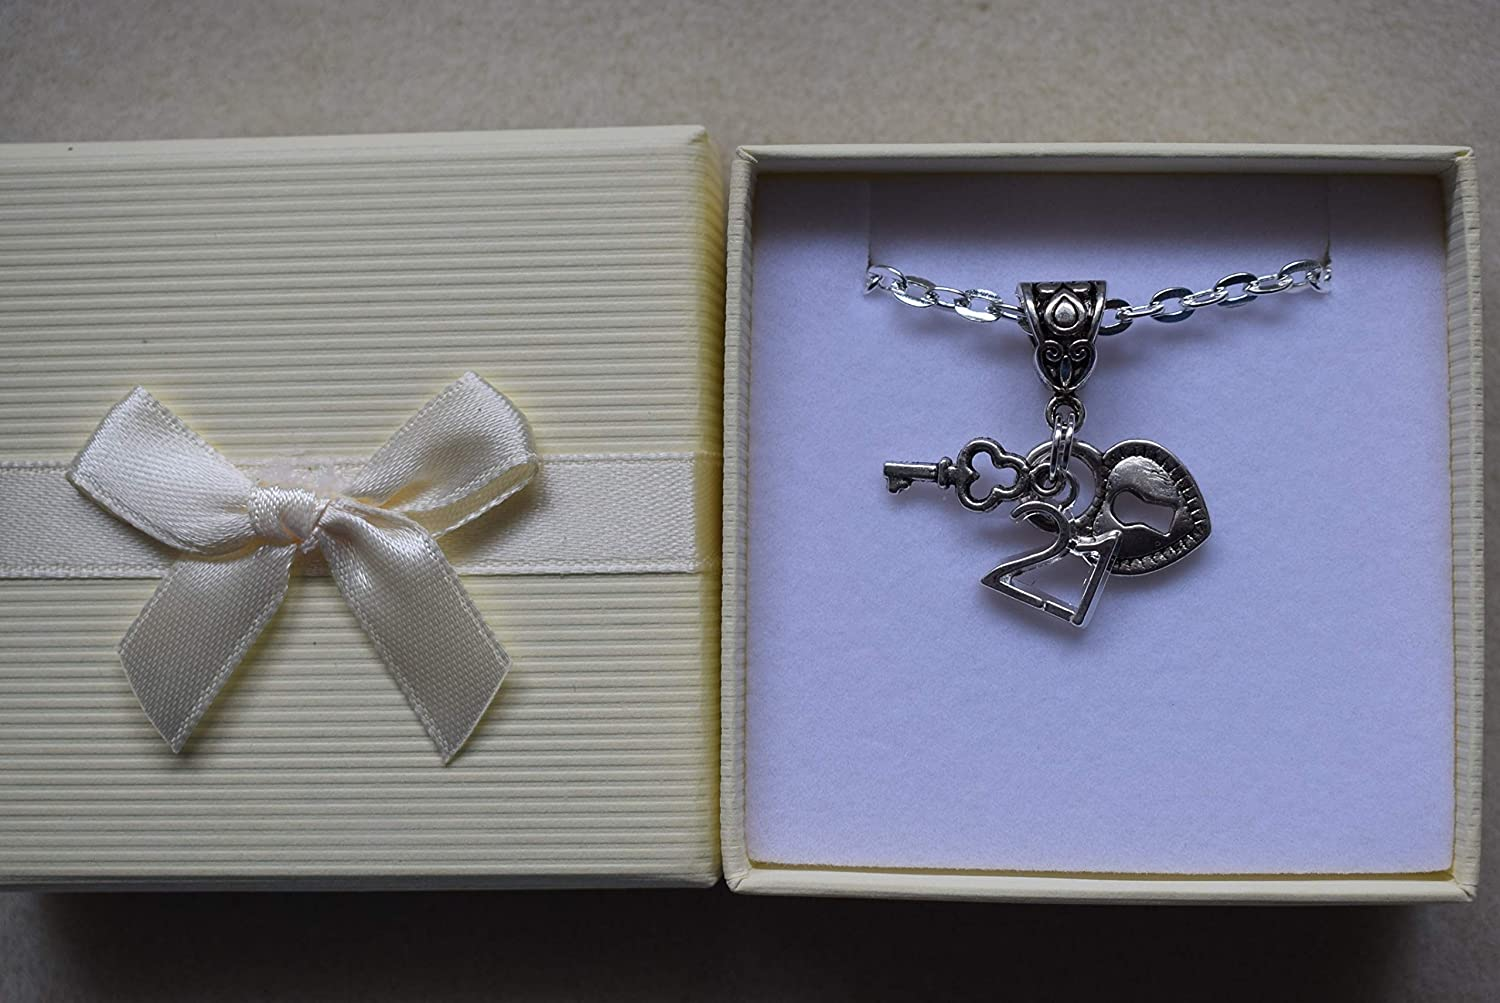 16th 18th 21st Necklace Lock /& Key Silver Plated Gift Boxed